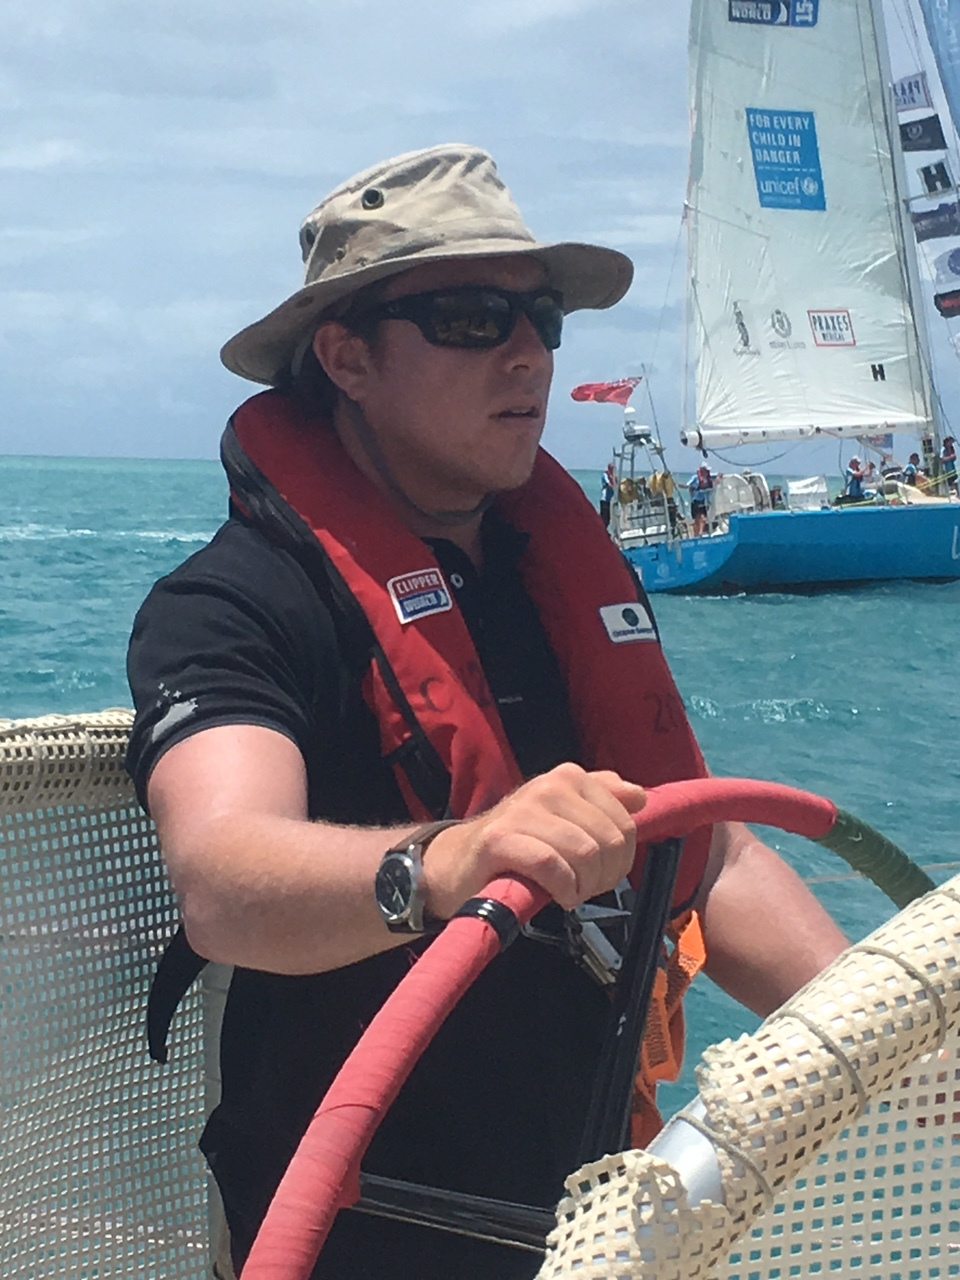 Matt on the helm - parade of sails